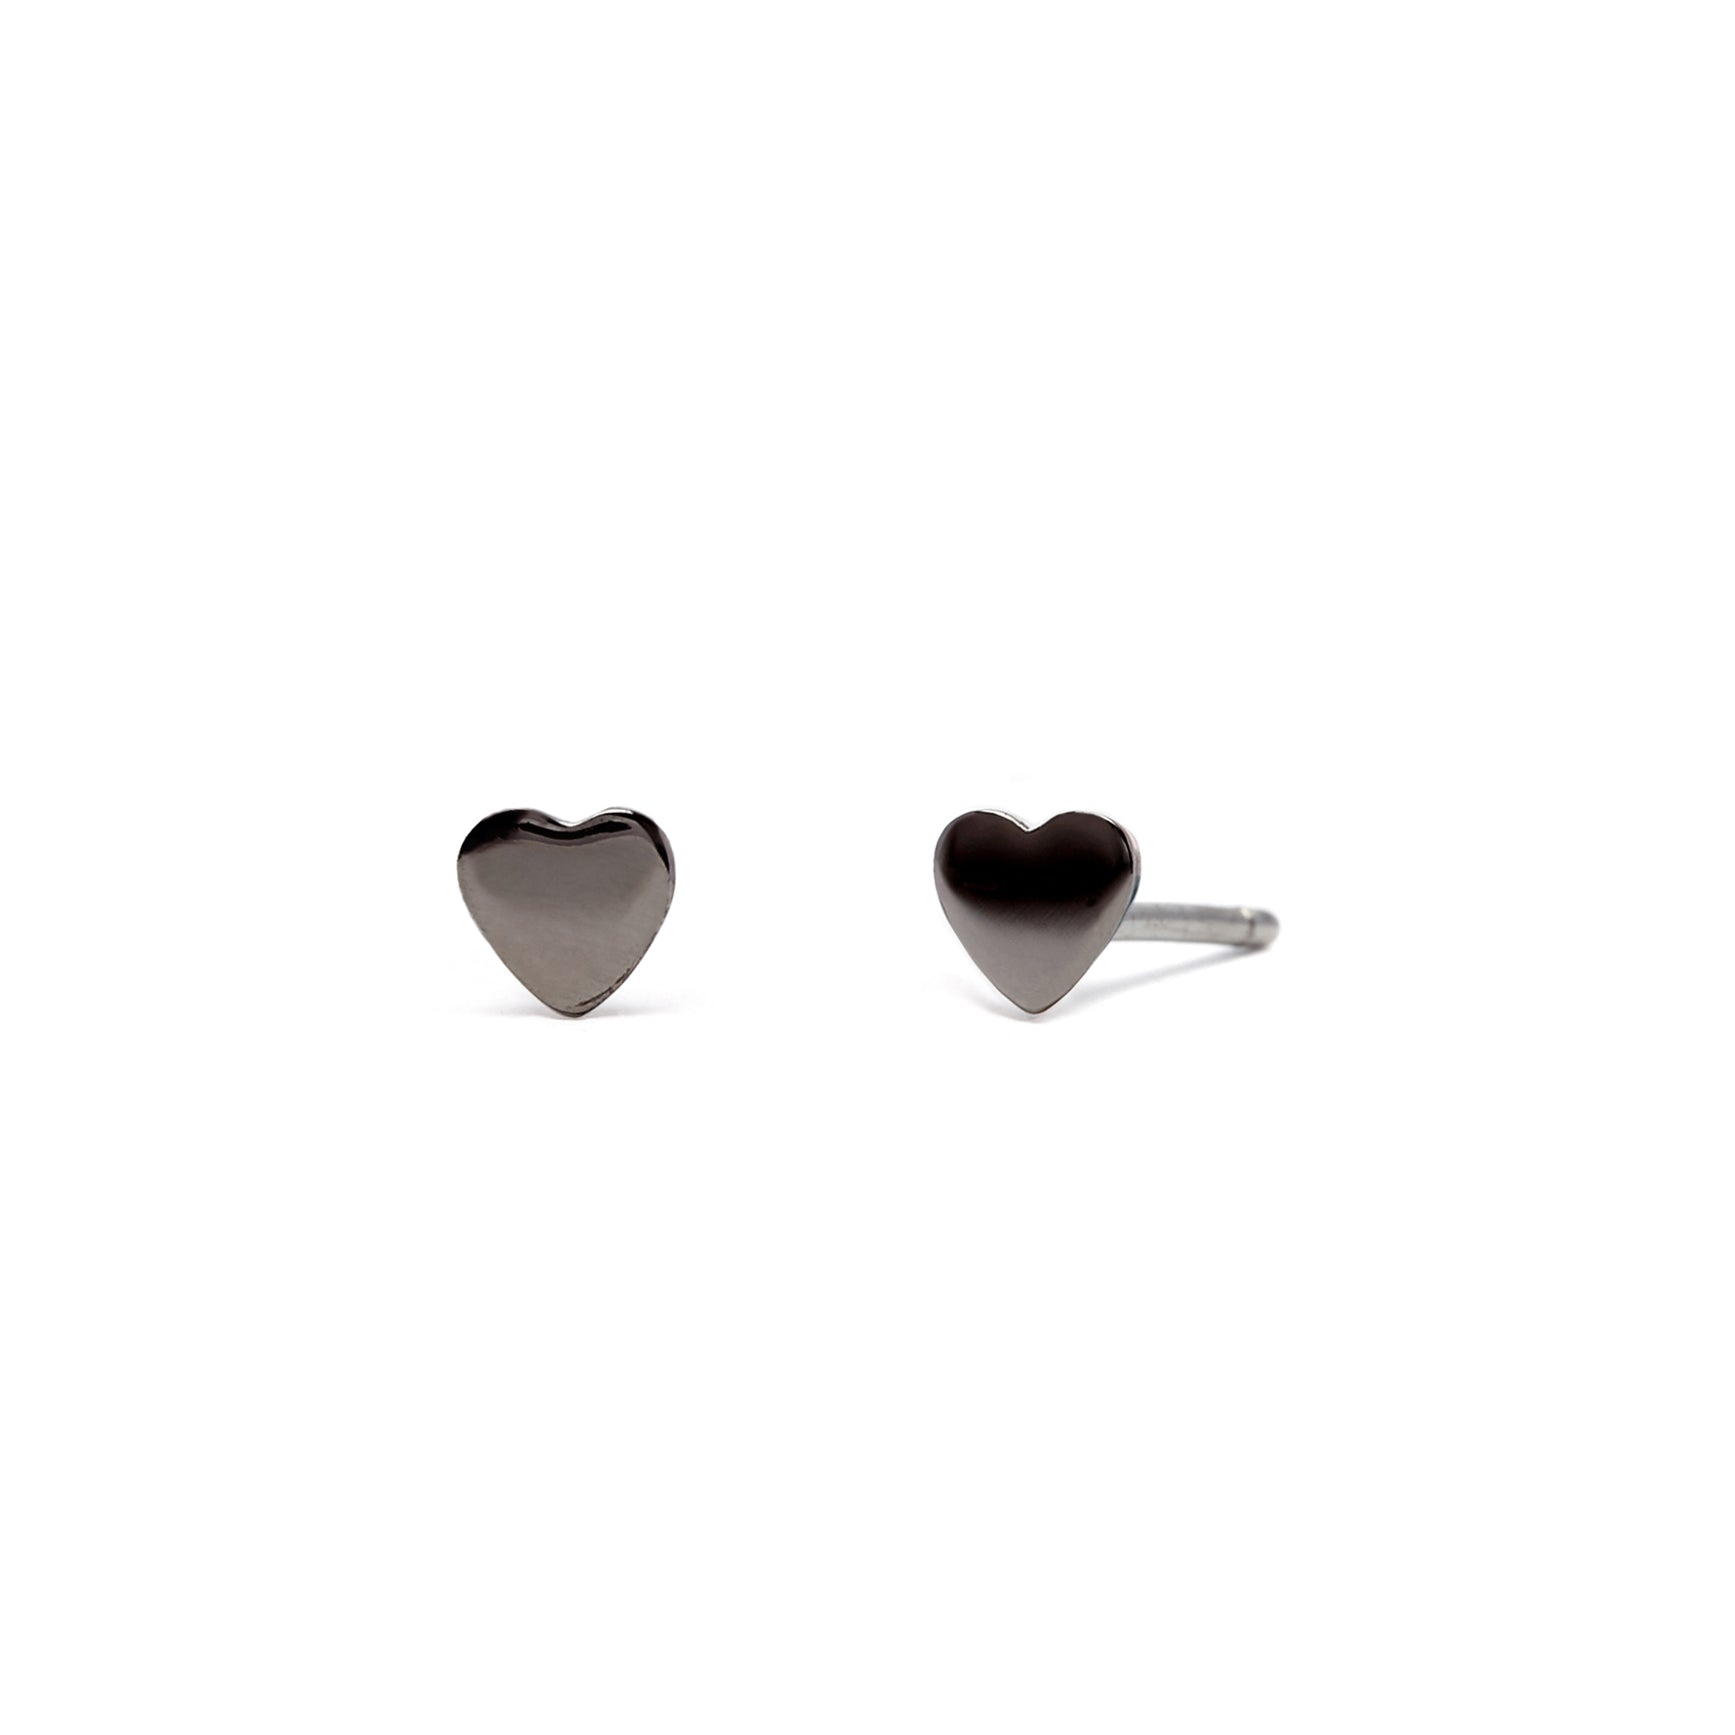 Love Heart - Earrings - Black Rhodium - Stud - Pair - Louise Varberg Jewellery